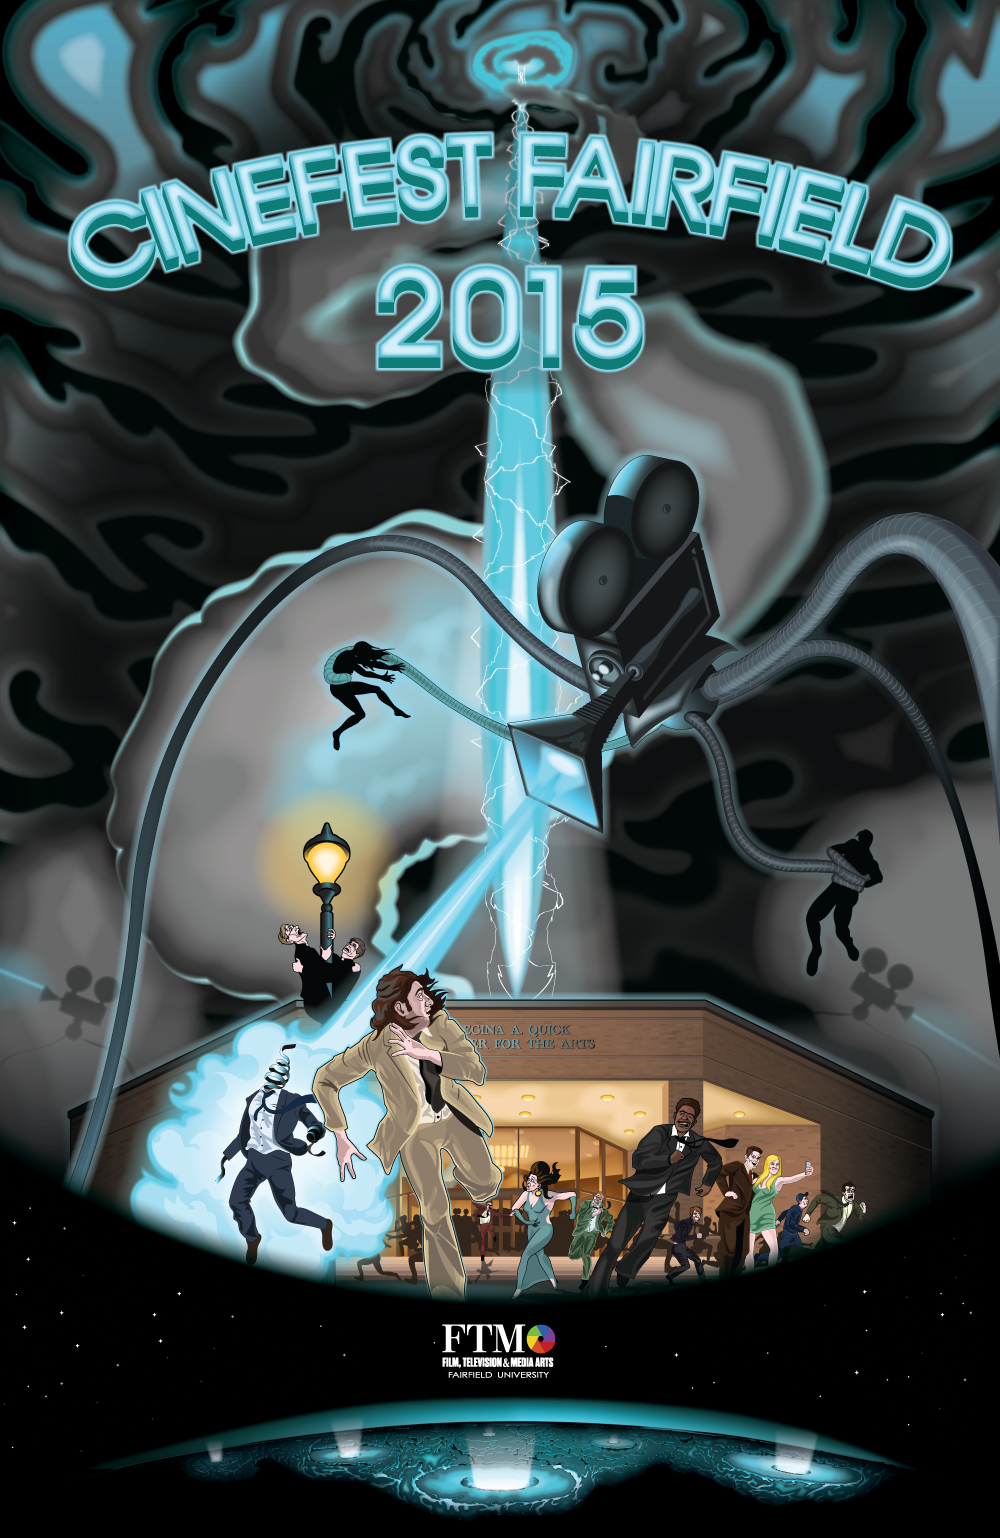 Cinefest Fairfield 2015 Poster Illustration